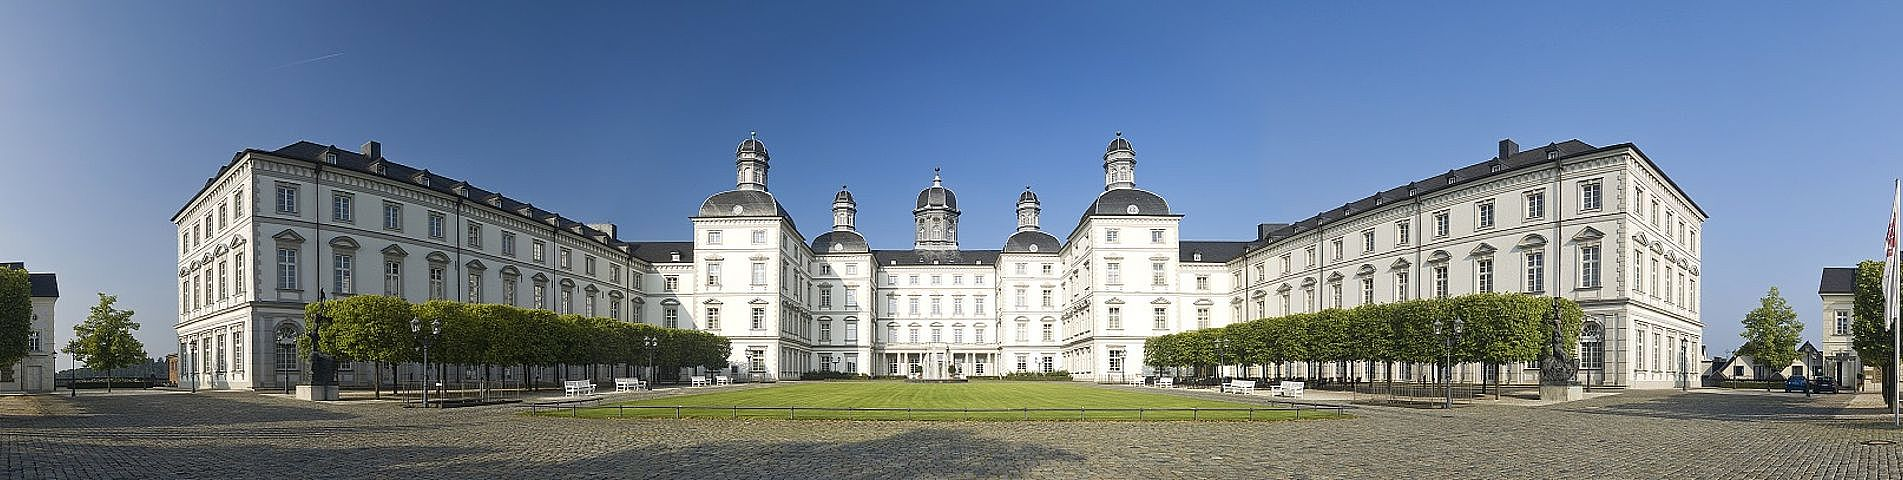 The event will be held at Schloss Bensberg.